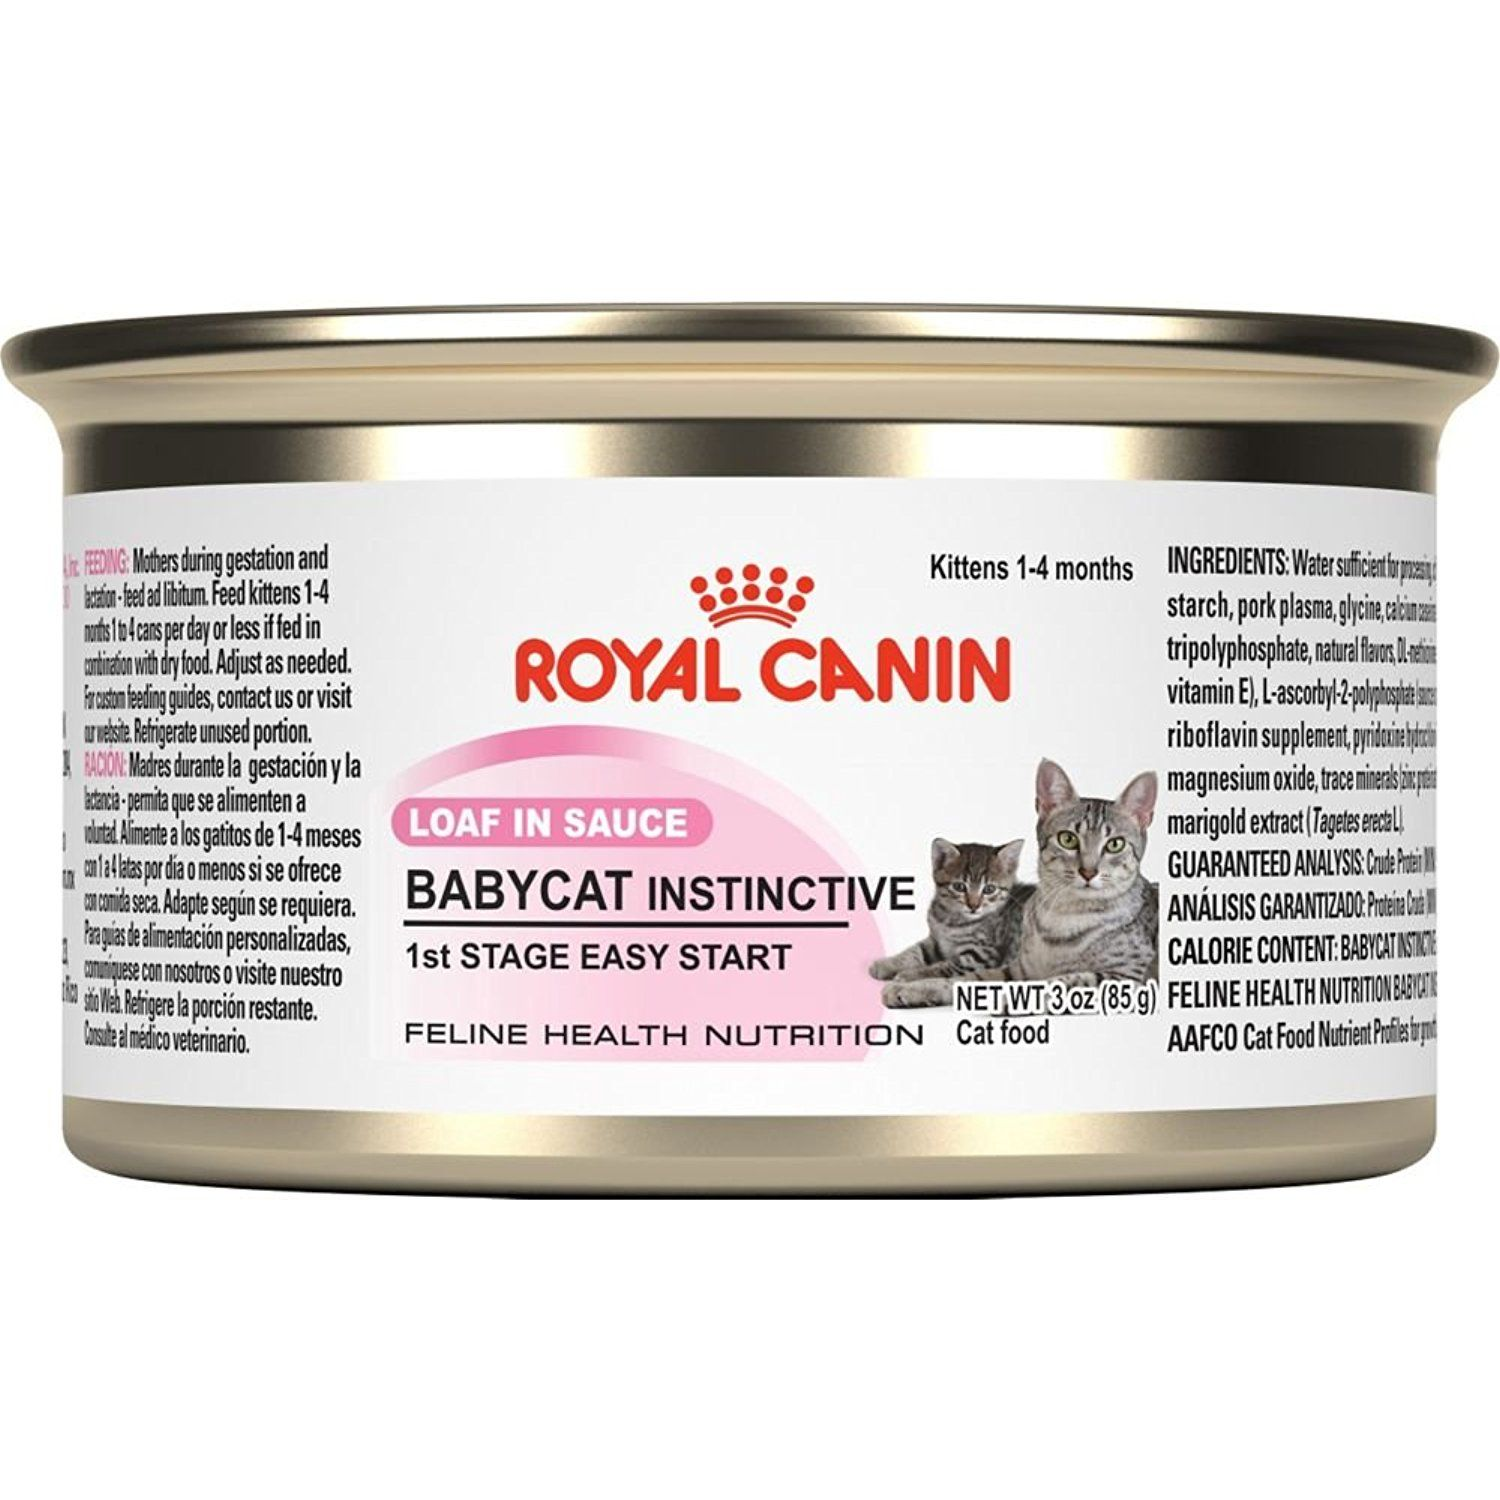 Royal Canin Feline Health Nutrition Babycat Instinctive Loaf In Sauce Canned Cat Food You Can Find More Det Canned Cat Food Kitten Food Feline Health